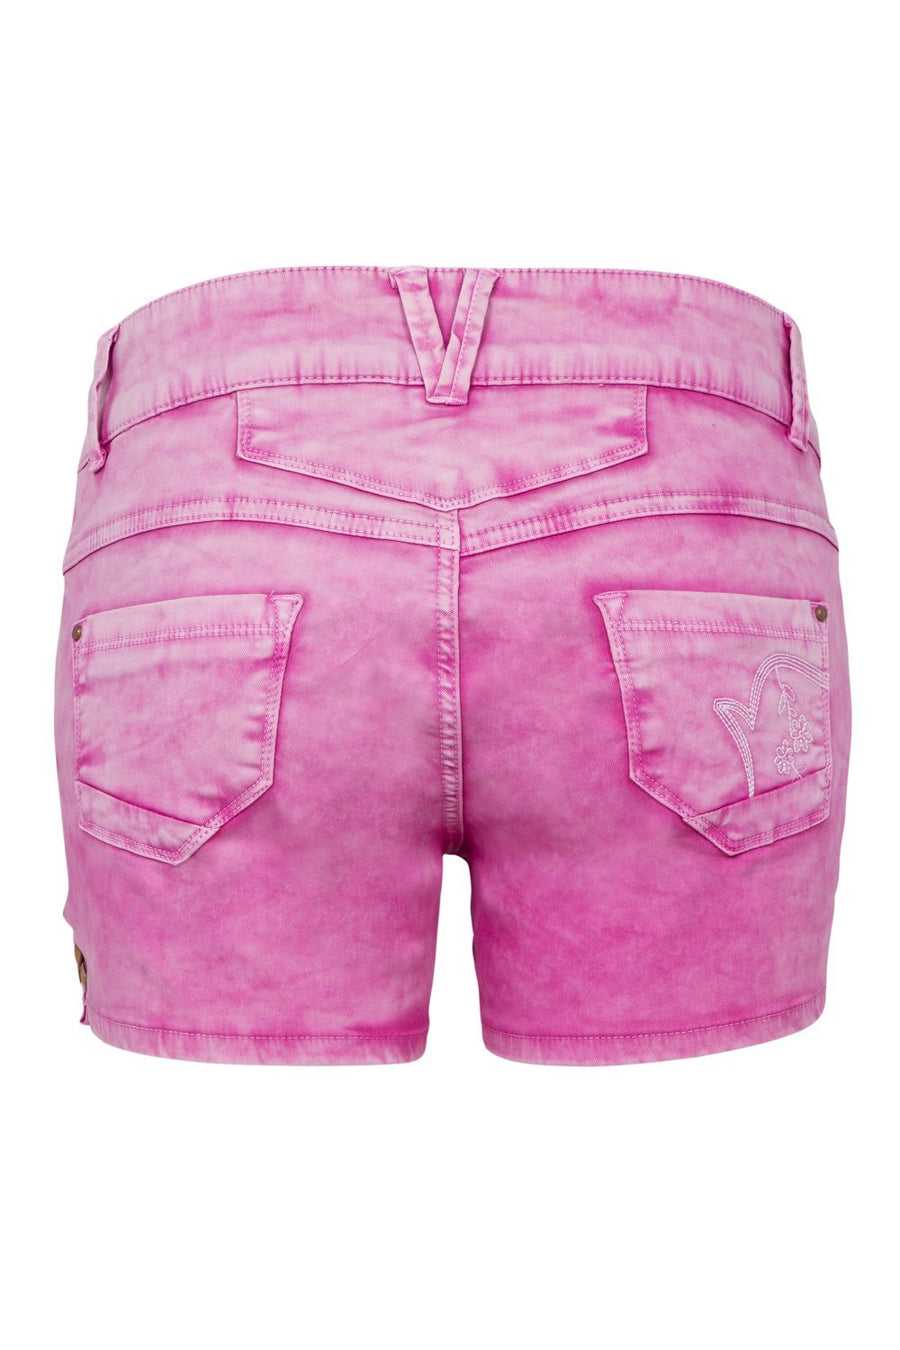 Modell: COLOR SHORT DAMEN OS - Trachtenflirt